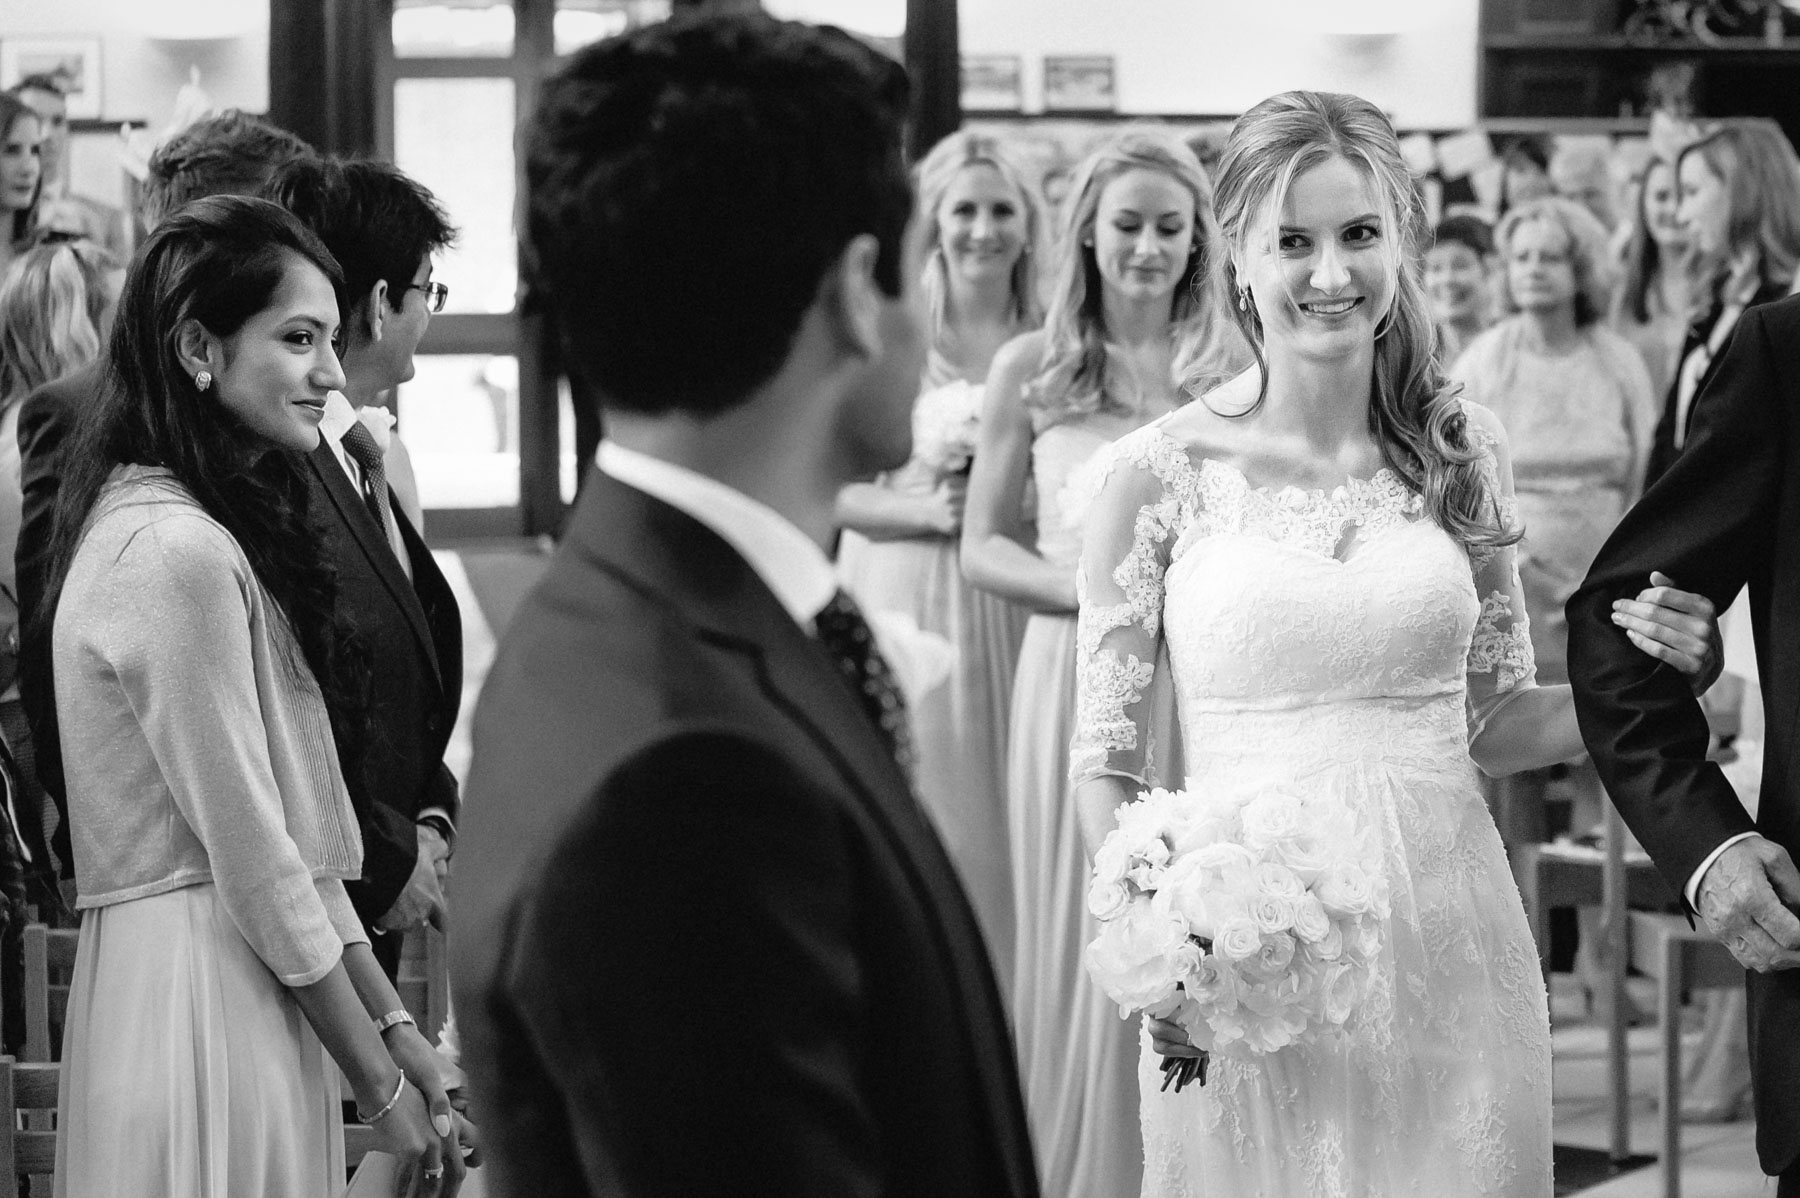 the arrival of the bride